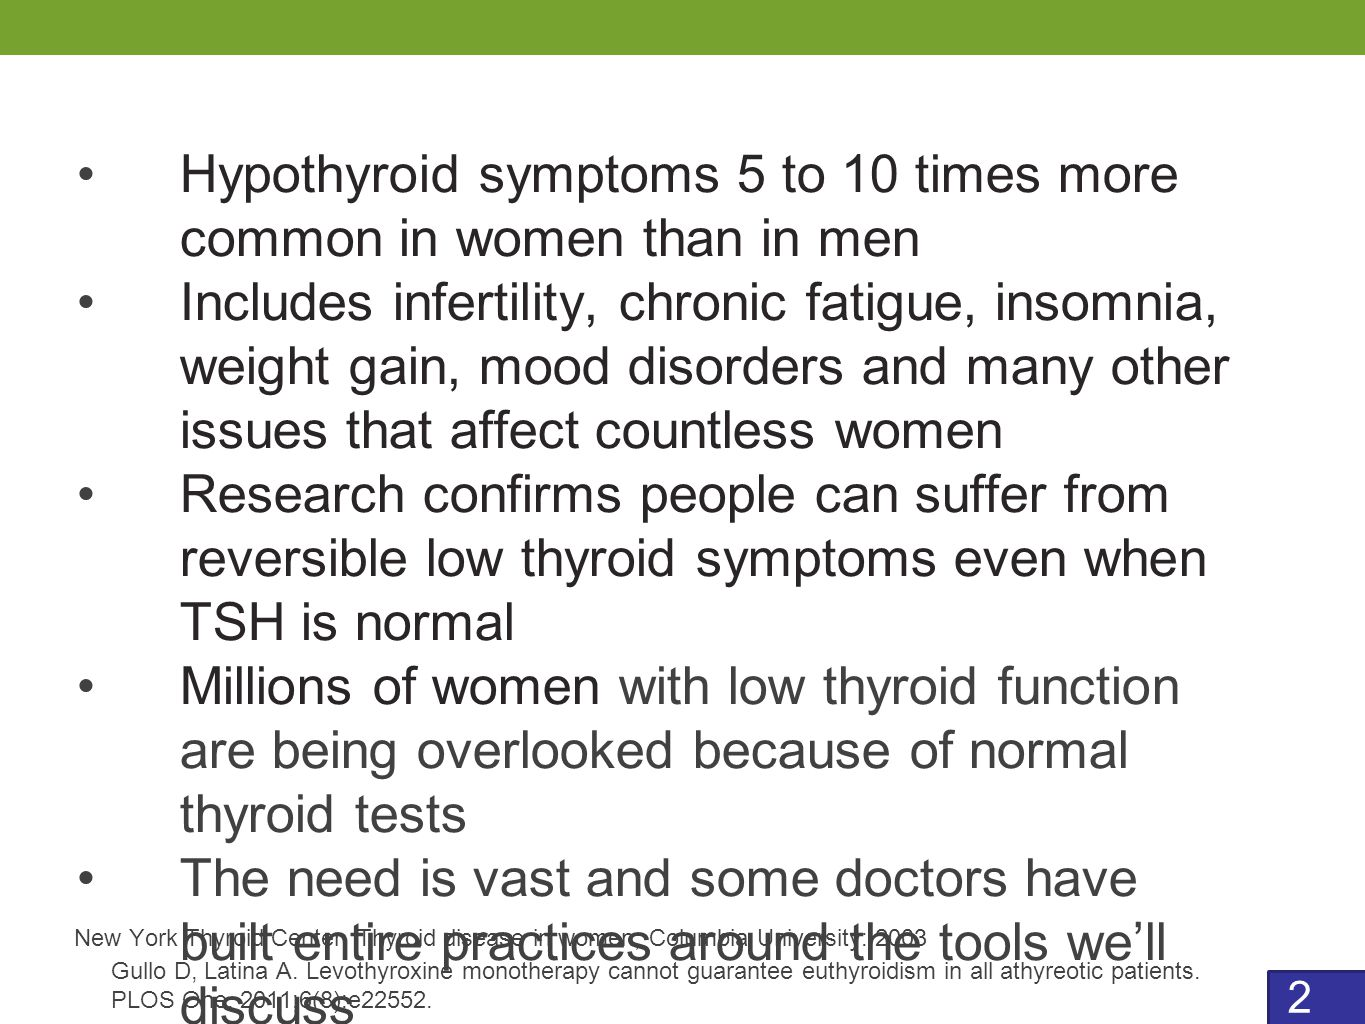 2 Hypothyroid symptoms 5 to 10 times more common in women than in men Includes infertility, chronic fatigue, insomnia, weight gain, mood disorders and